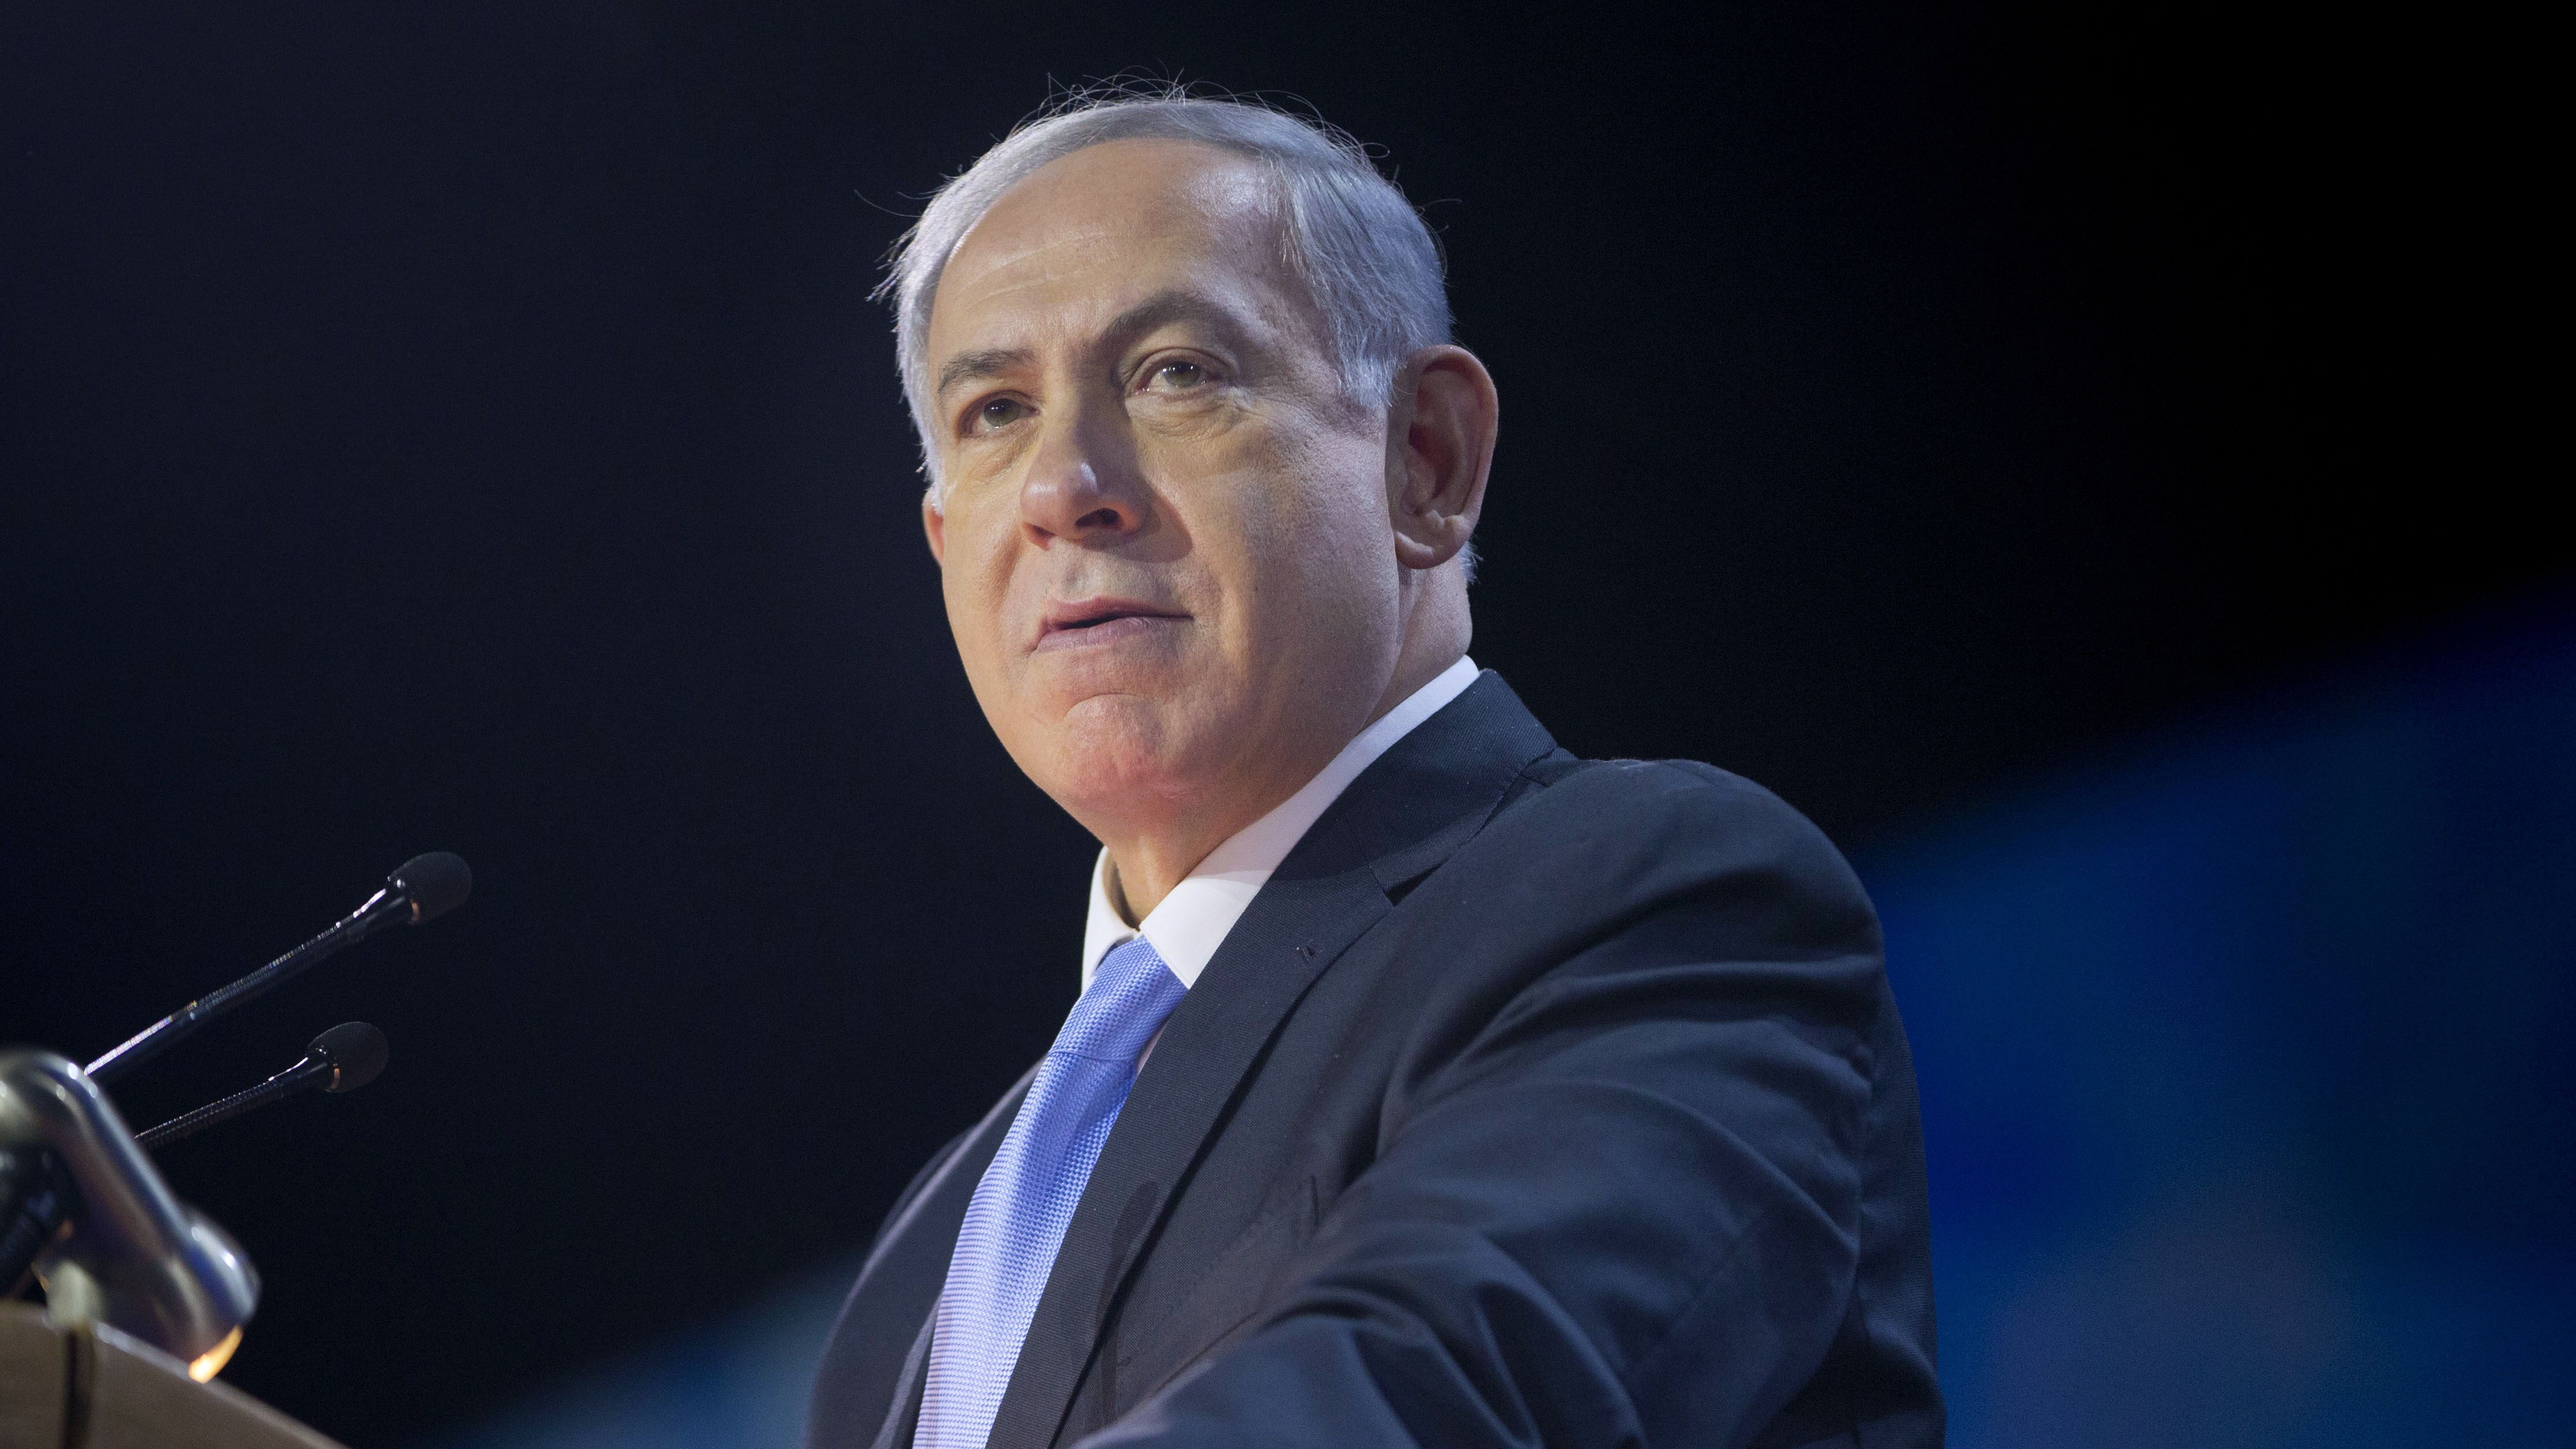 Israeli Prime Minister Benjamin Netanyahu speaks at the American Israel Public Affairs Committee (AIPAC) Policy Conference in Washington, Monday, March 2, 2015. Netanyahu is seizing the high-profile bully pulpit of the U.S. House to deliver his stern message about the dangers of a nuclear deal that President Barack Obama and U.S. allies might sign with Israelís archenemy.  (AP Photo/Pablo Martinez Monsivais)